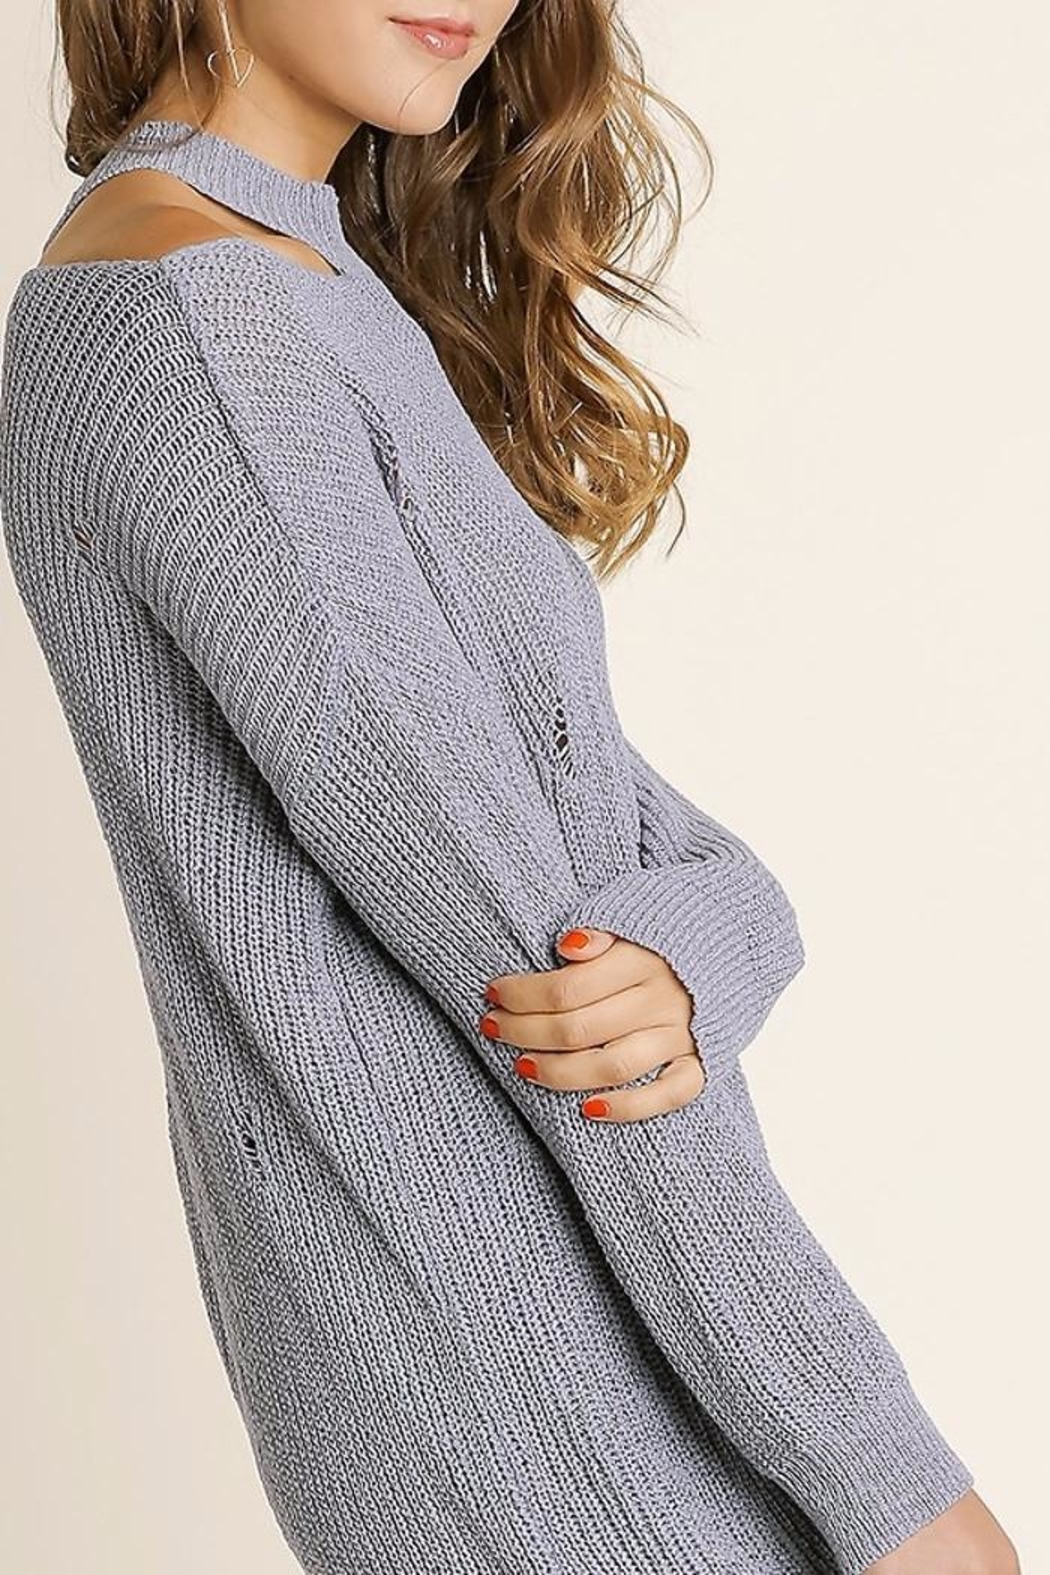 People Outfitter Vintage Knit Sweater - Front Full Image